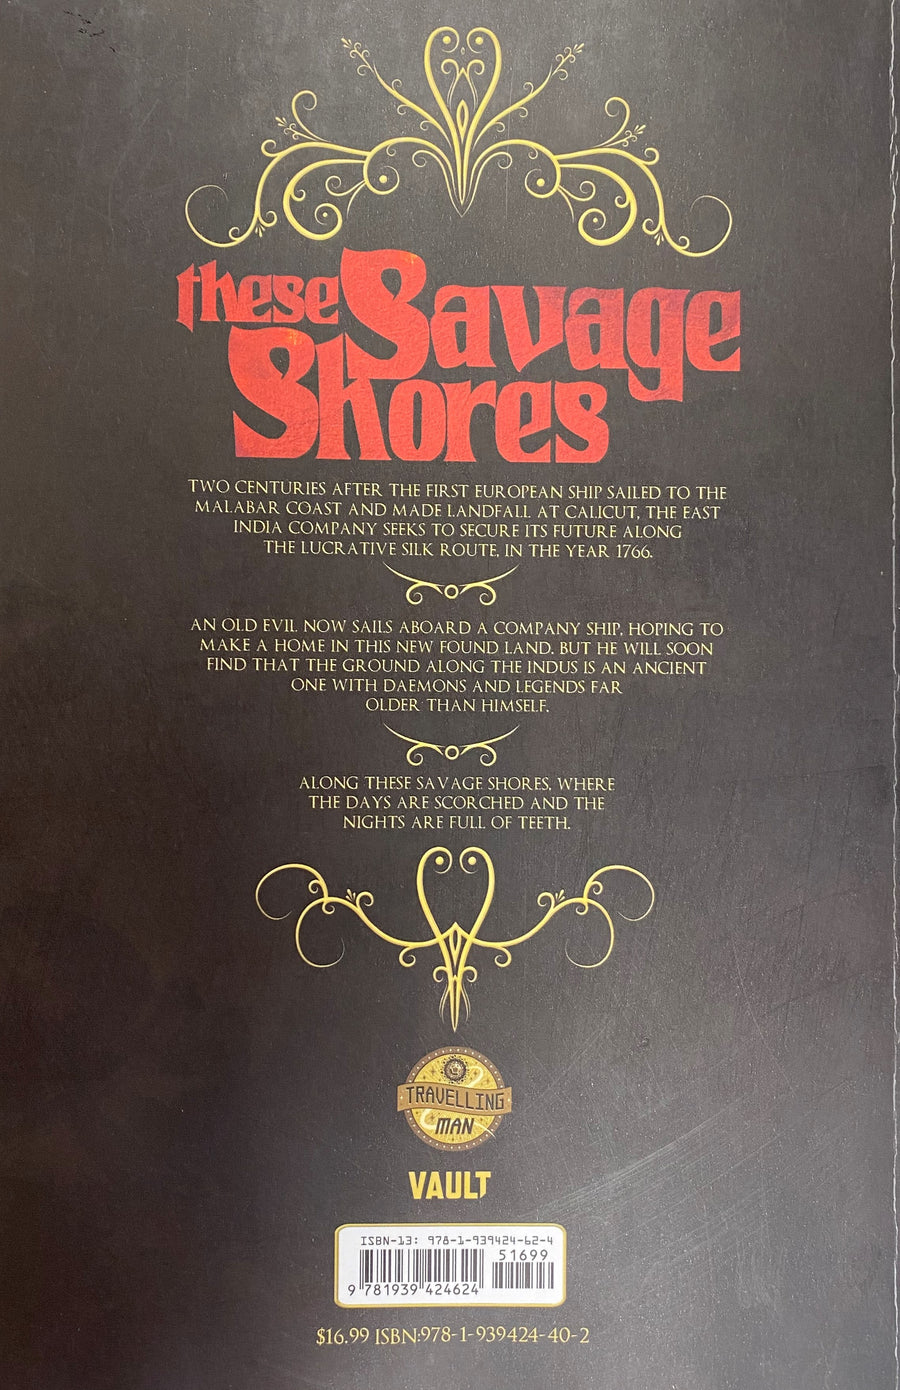 These Savage Shores *TRAVELLING MAN EXCLUSIVE COVER*